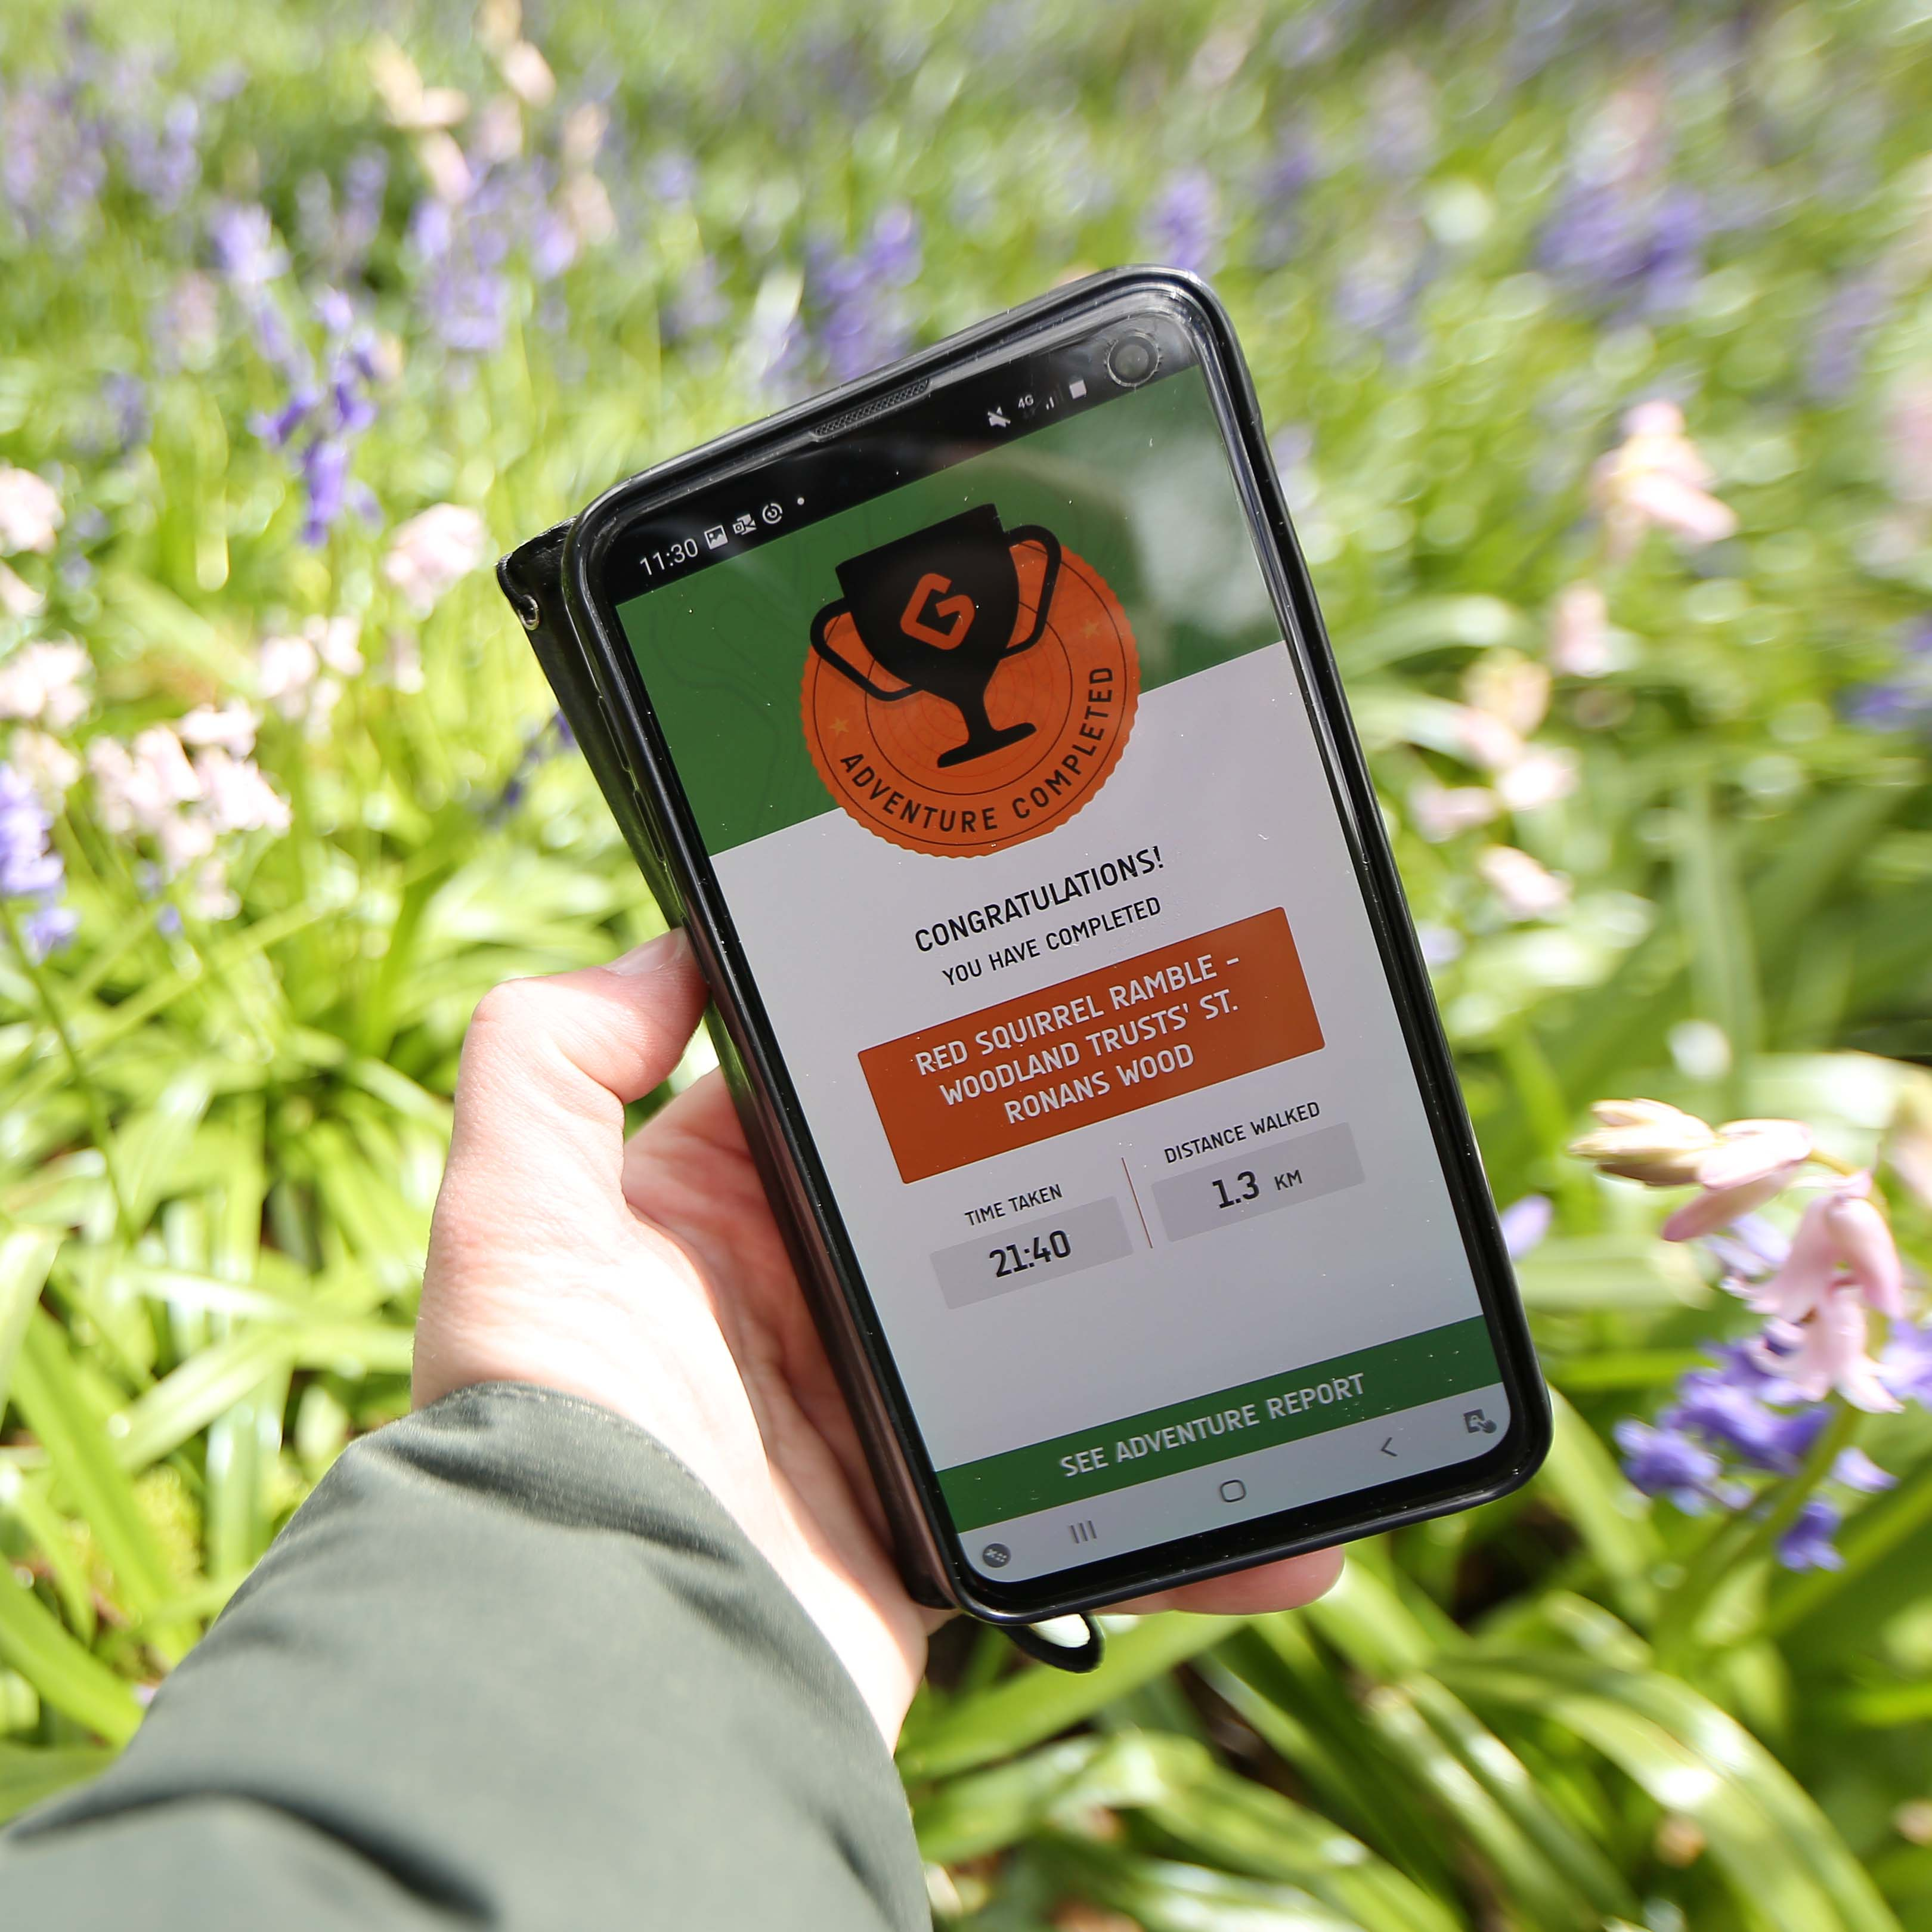 News: Take a red squirrel ramble with new digital walking routes